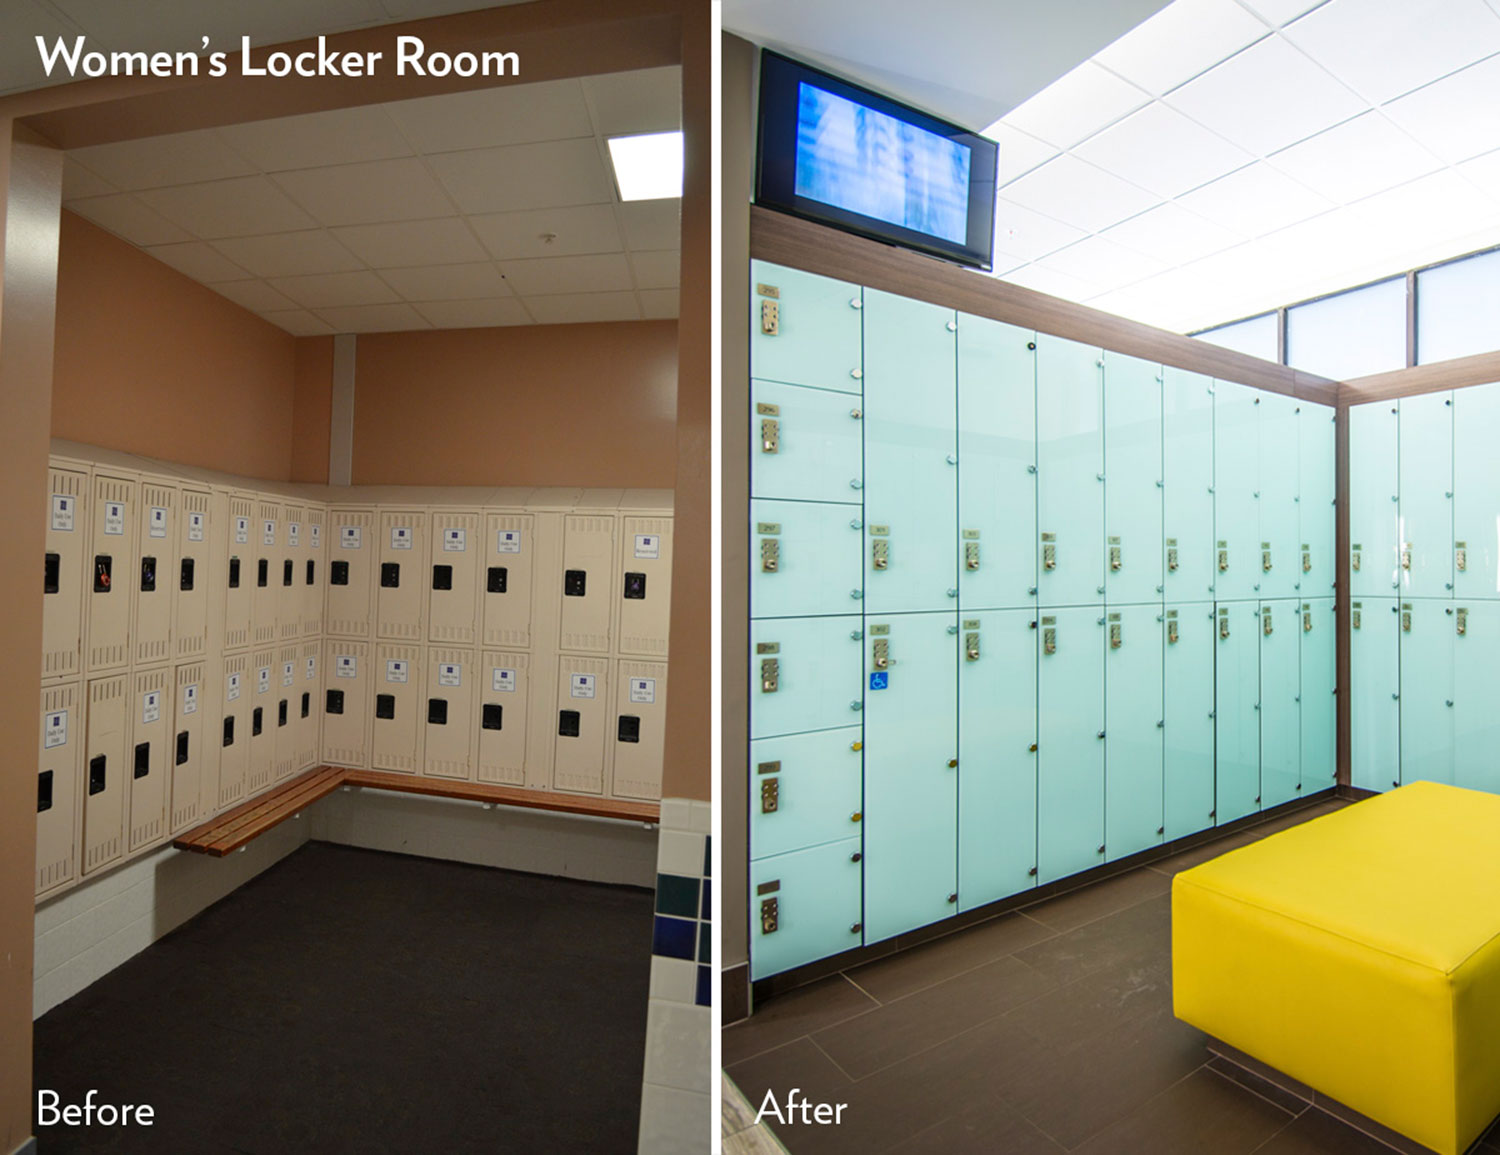 Premier-Women's-Locker-Room-Vertical.jpg